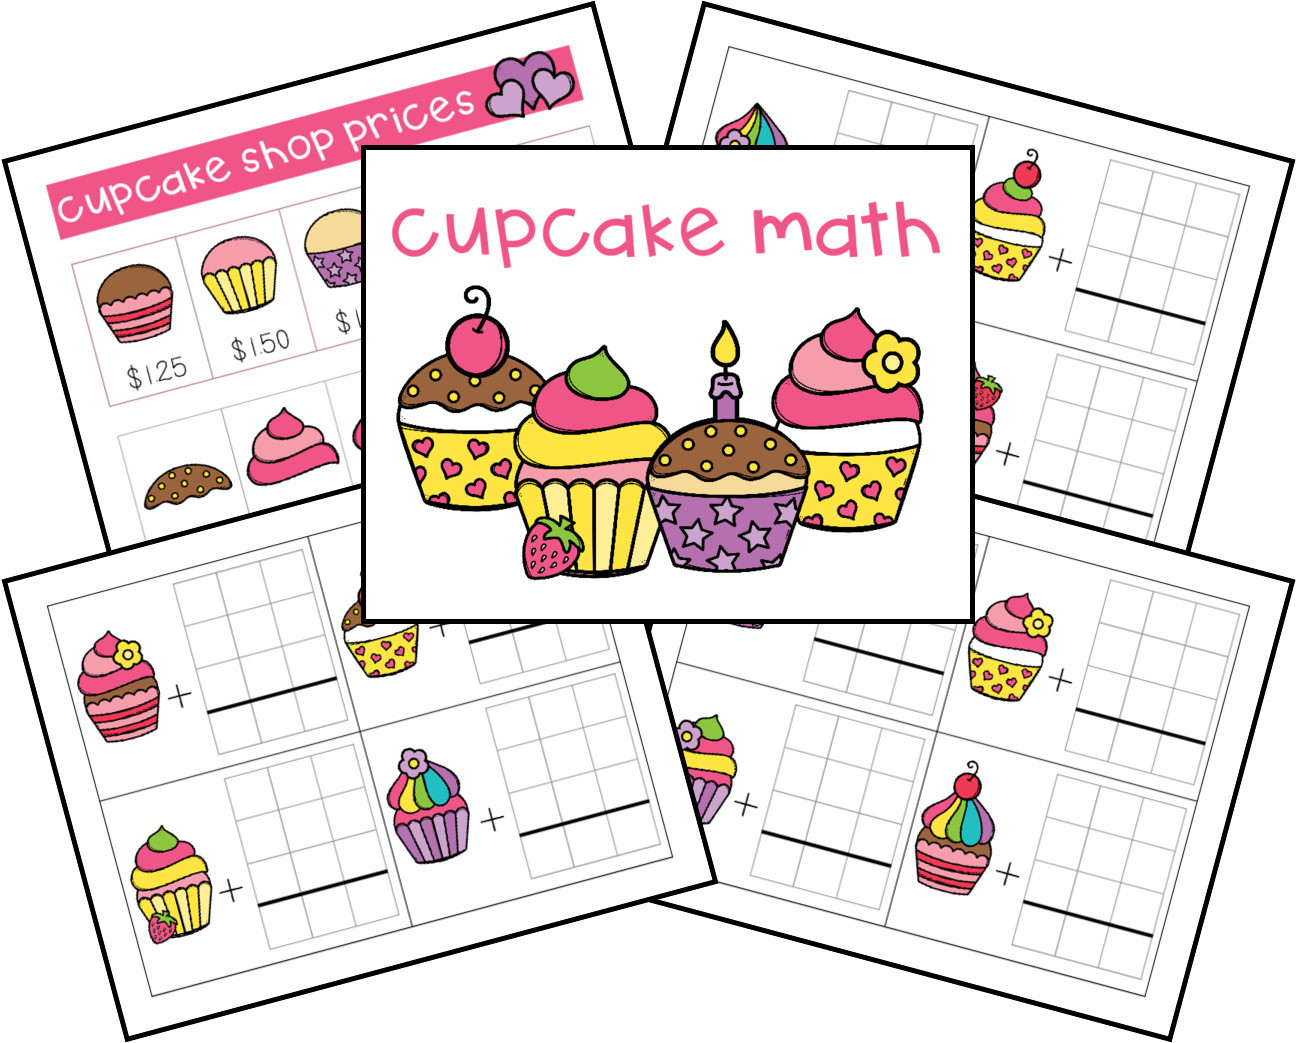 Shopping Math Worksheet Free Cupcake Shop Money Math Problems